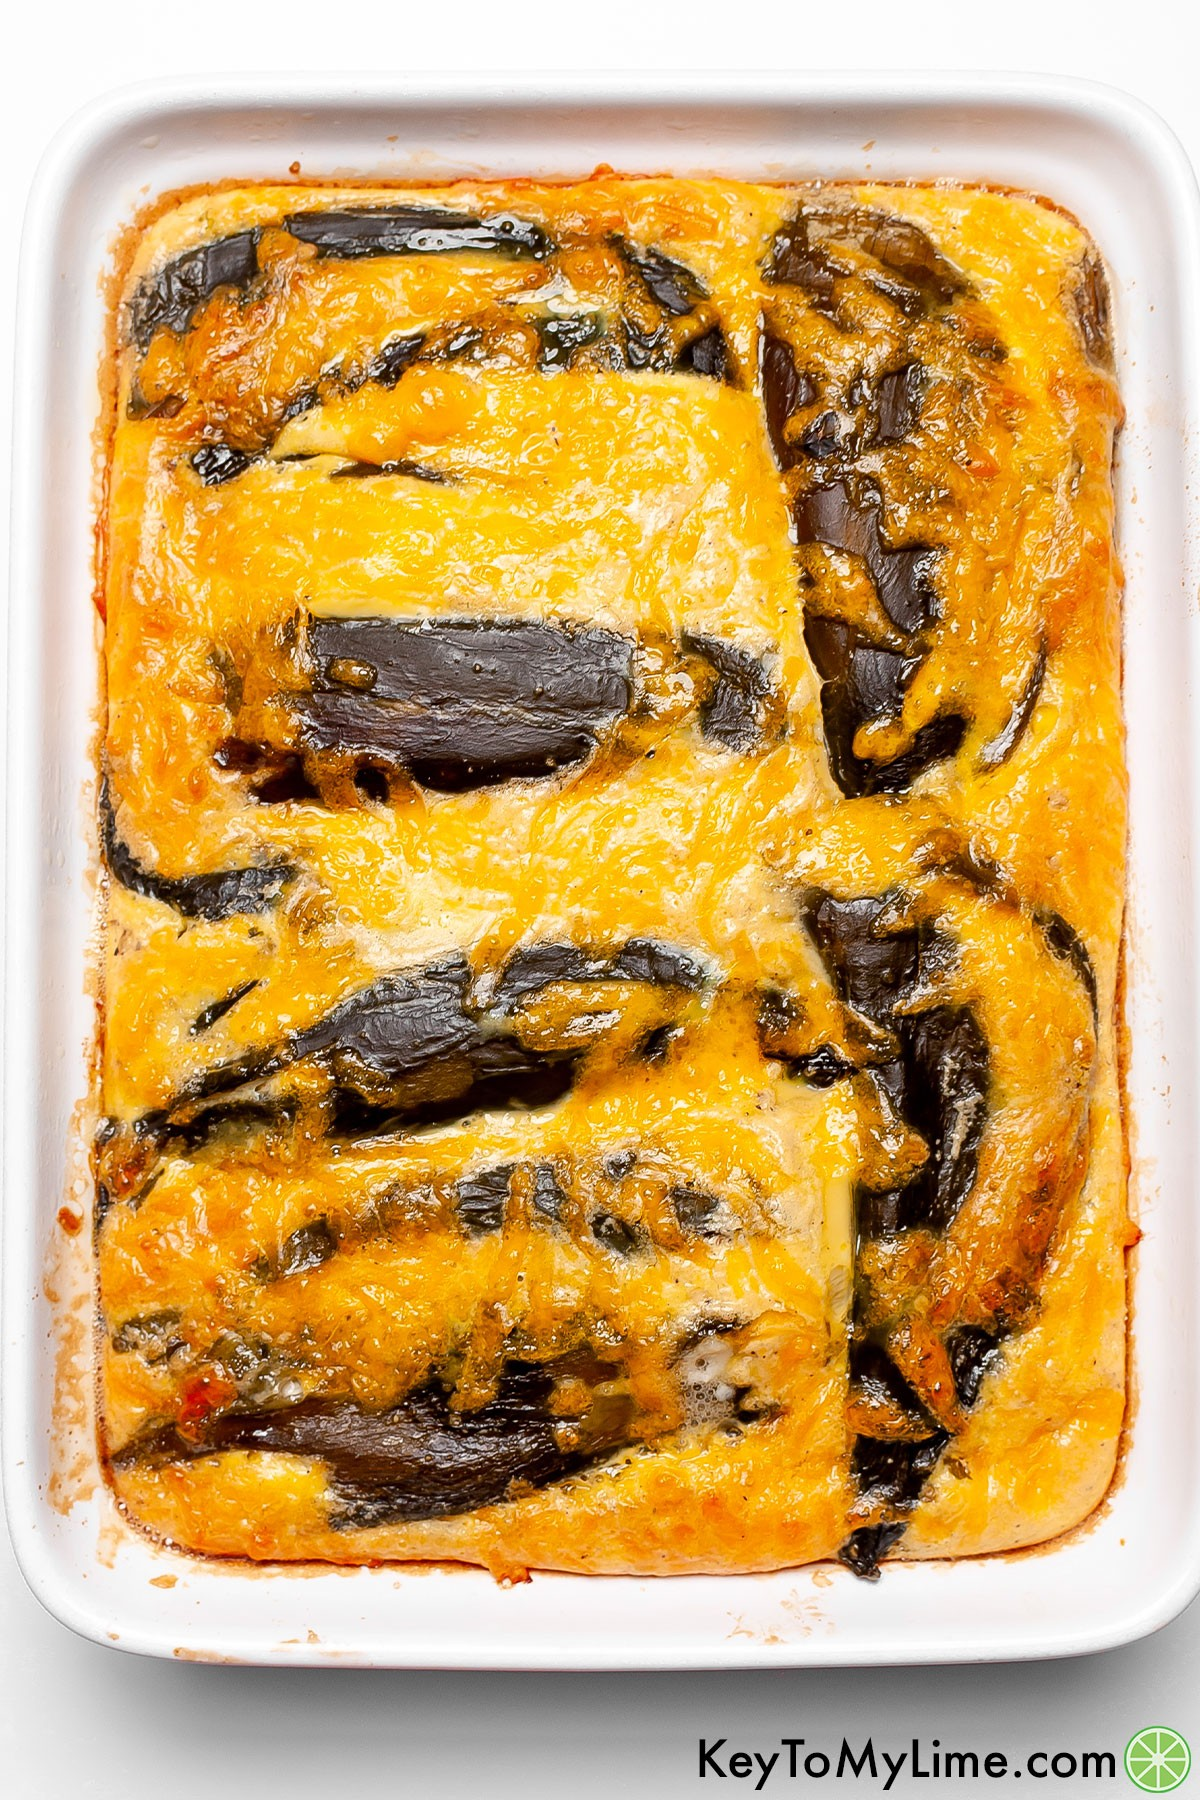 A picture of chile relleno casserole showing how the casserole is puffy and fluffy right when it comes out of the oven.